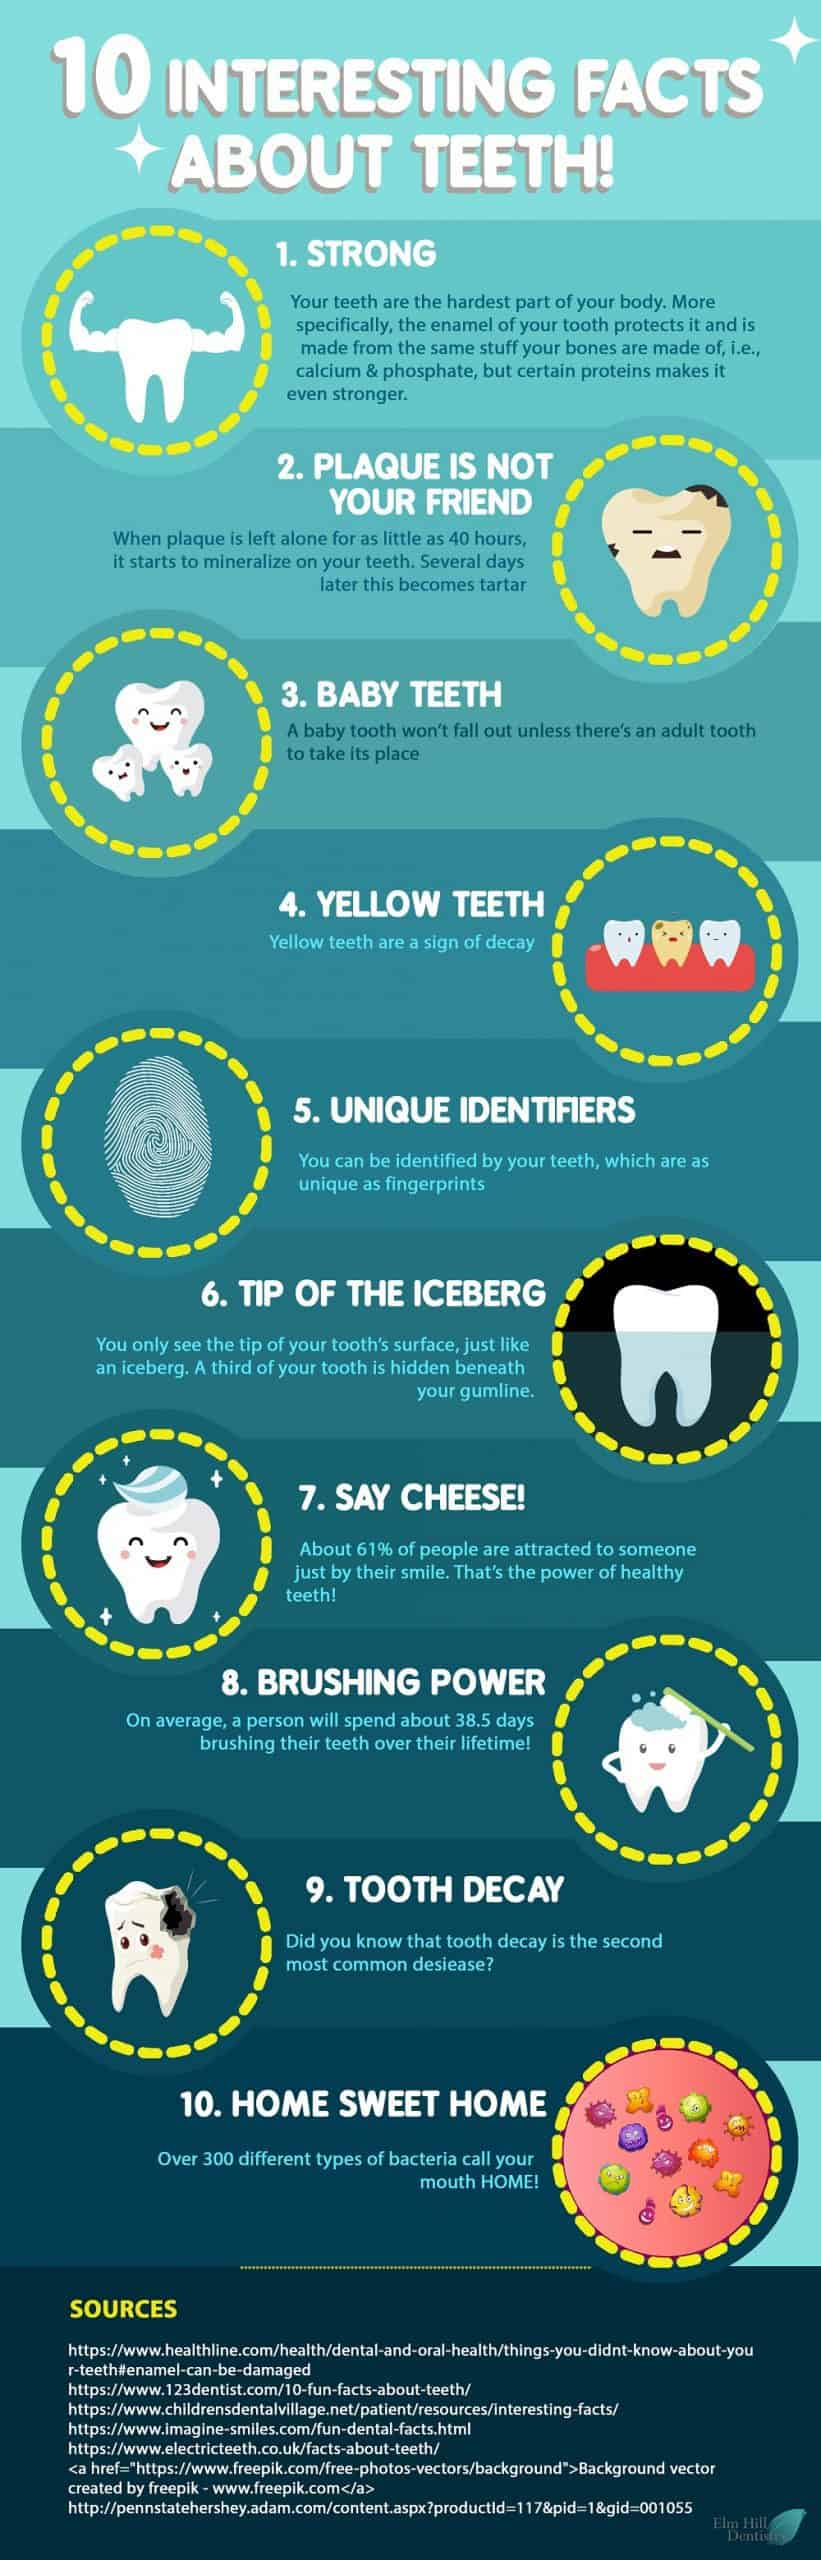 10 Super Interesting Facts About Teeth